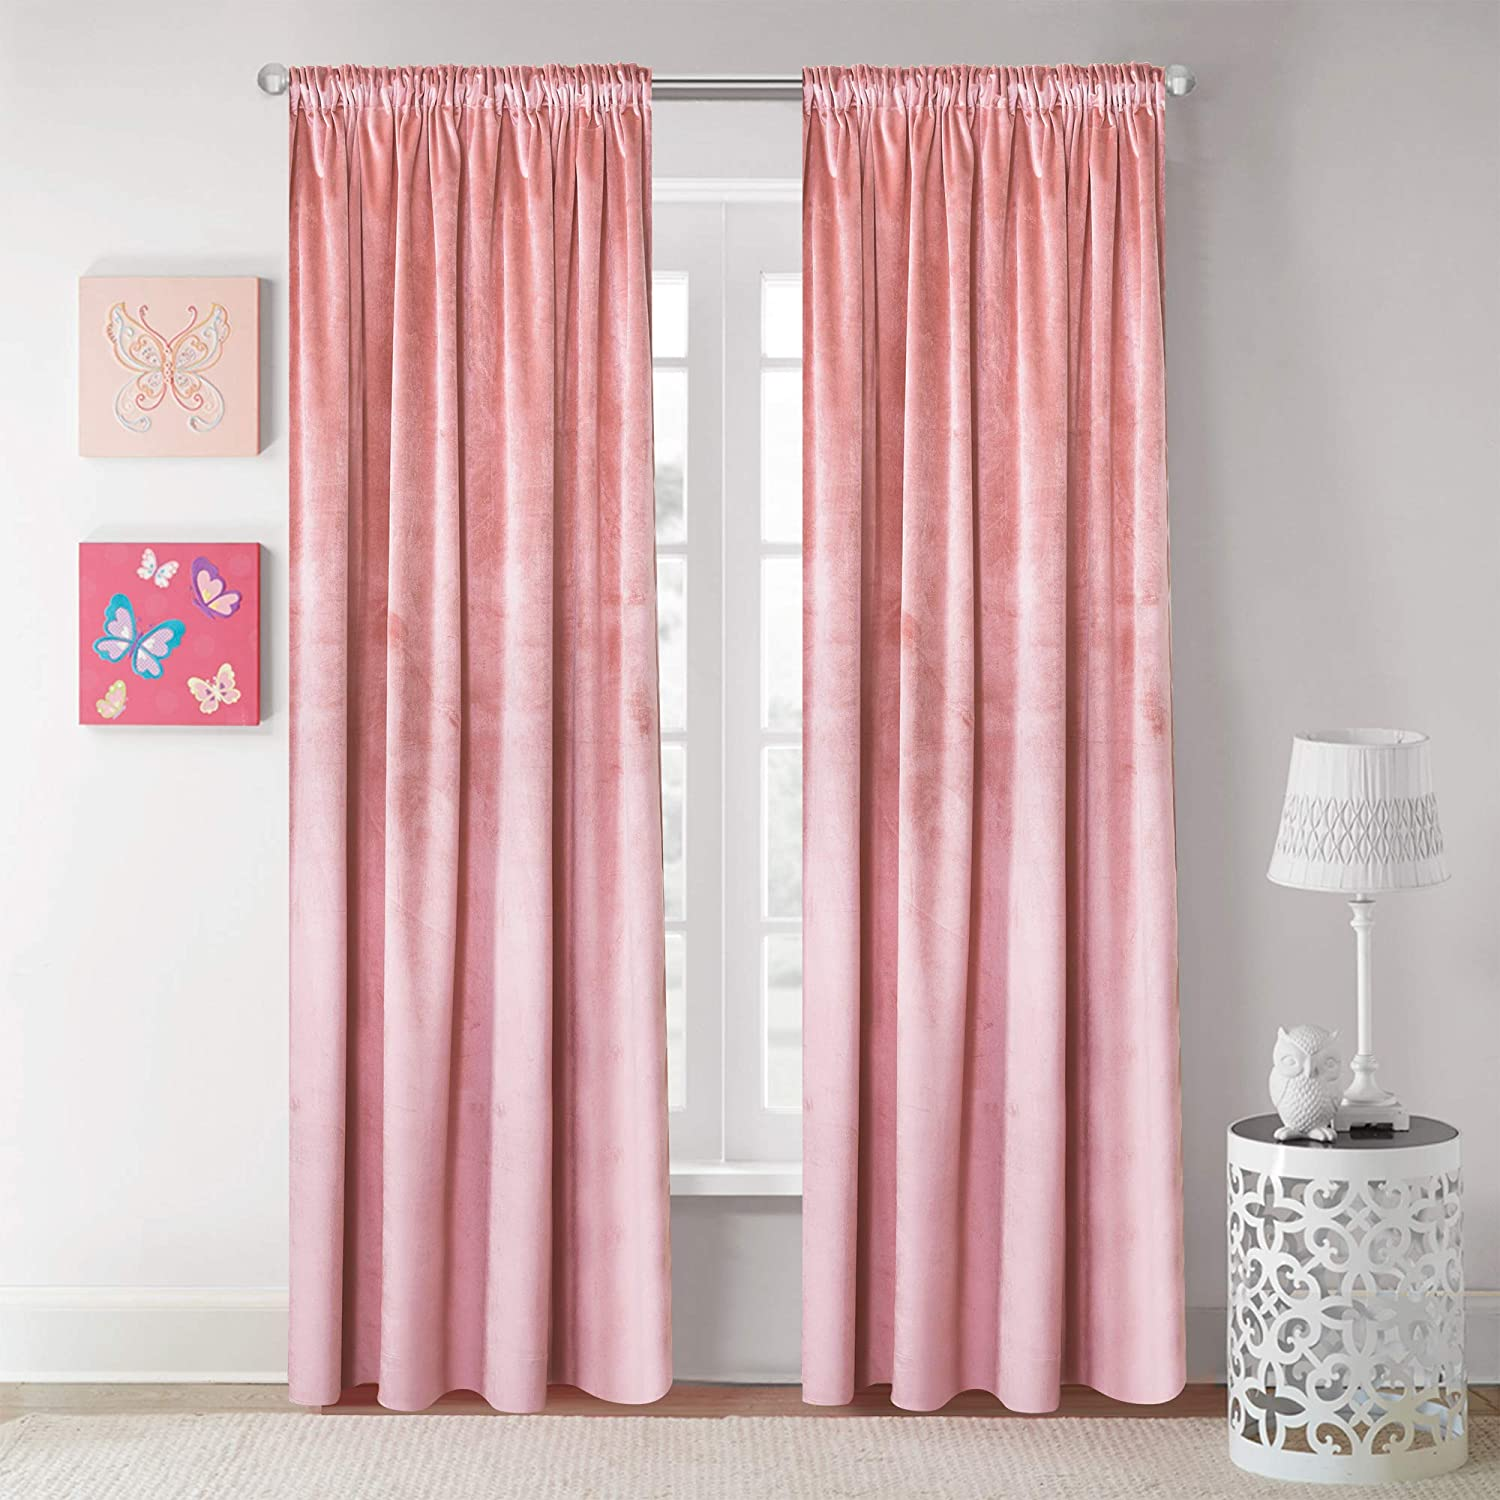 Roslynwood Velvet Curtain Panels Blush Room Darkening Window Super Soft Luxury Drapes for Bedroom Thermal Insulated Rod Pocket Curtain for Living Room 2 Panels, 52 by 63 Inch